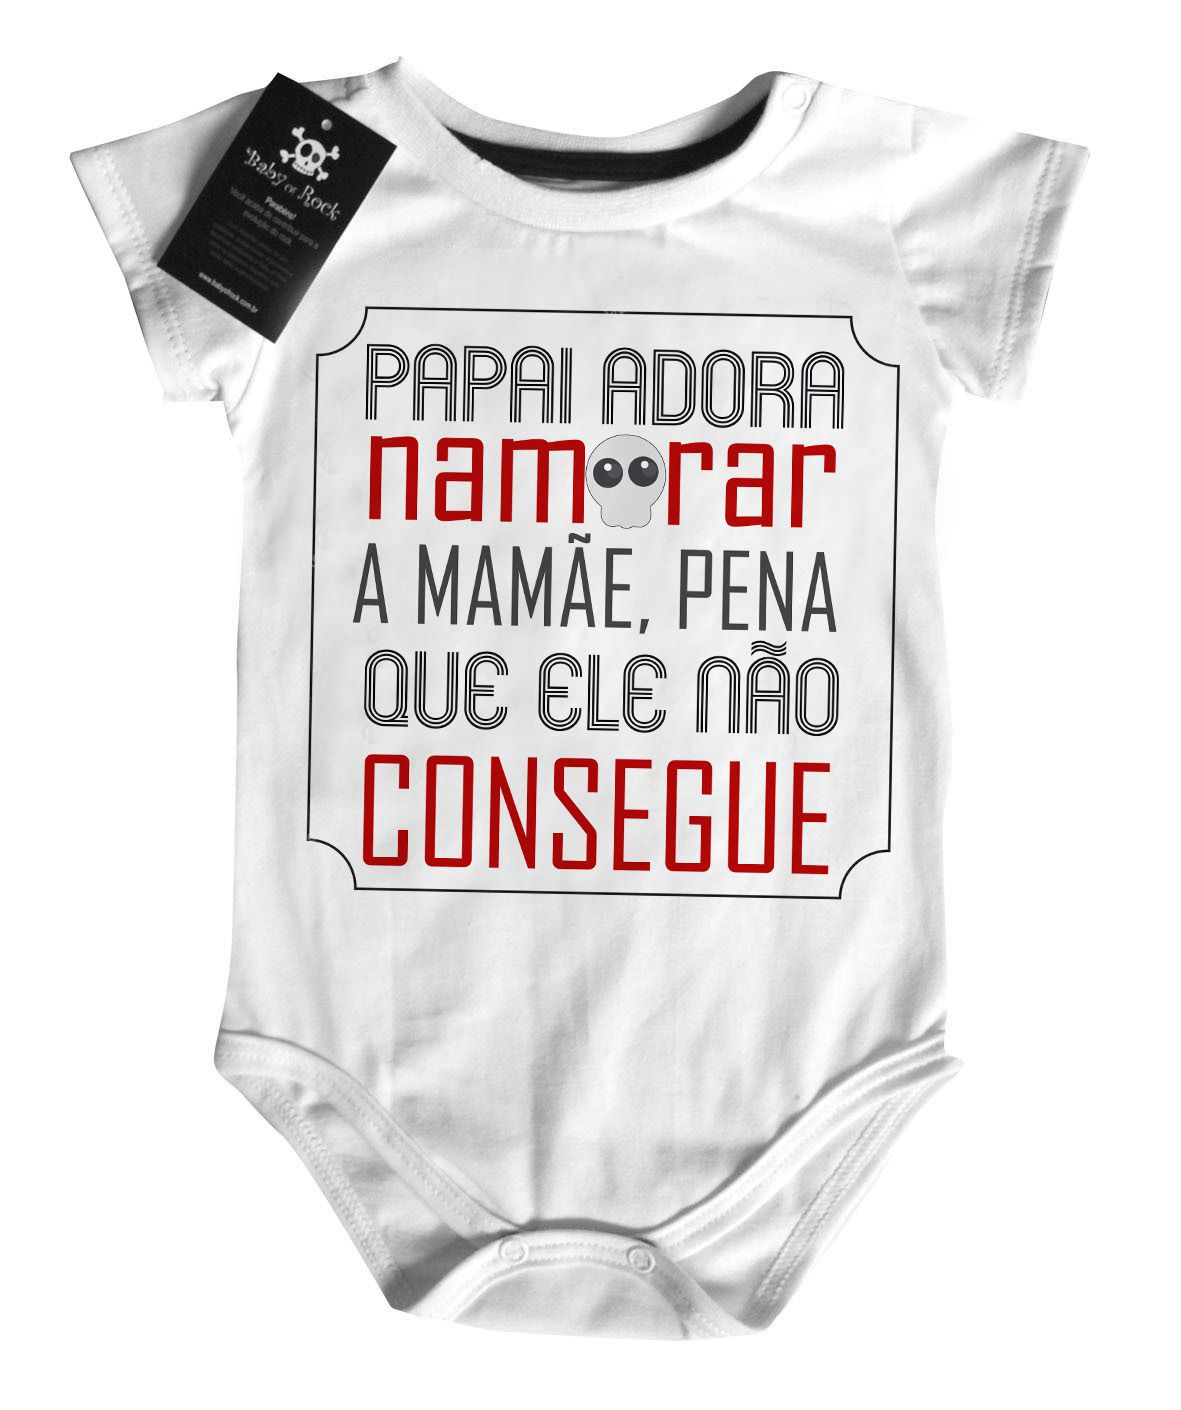 Body Divertido Bebê - Papai adora namorar a mamae - White  - Baby Monster - Body Bebe